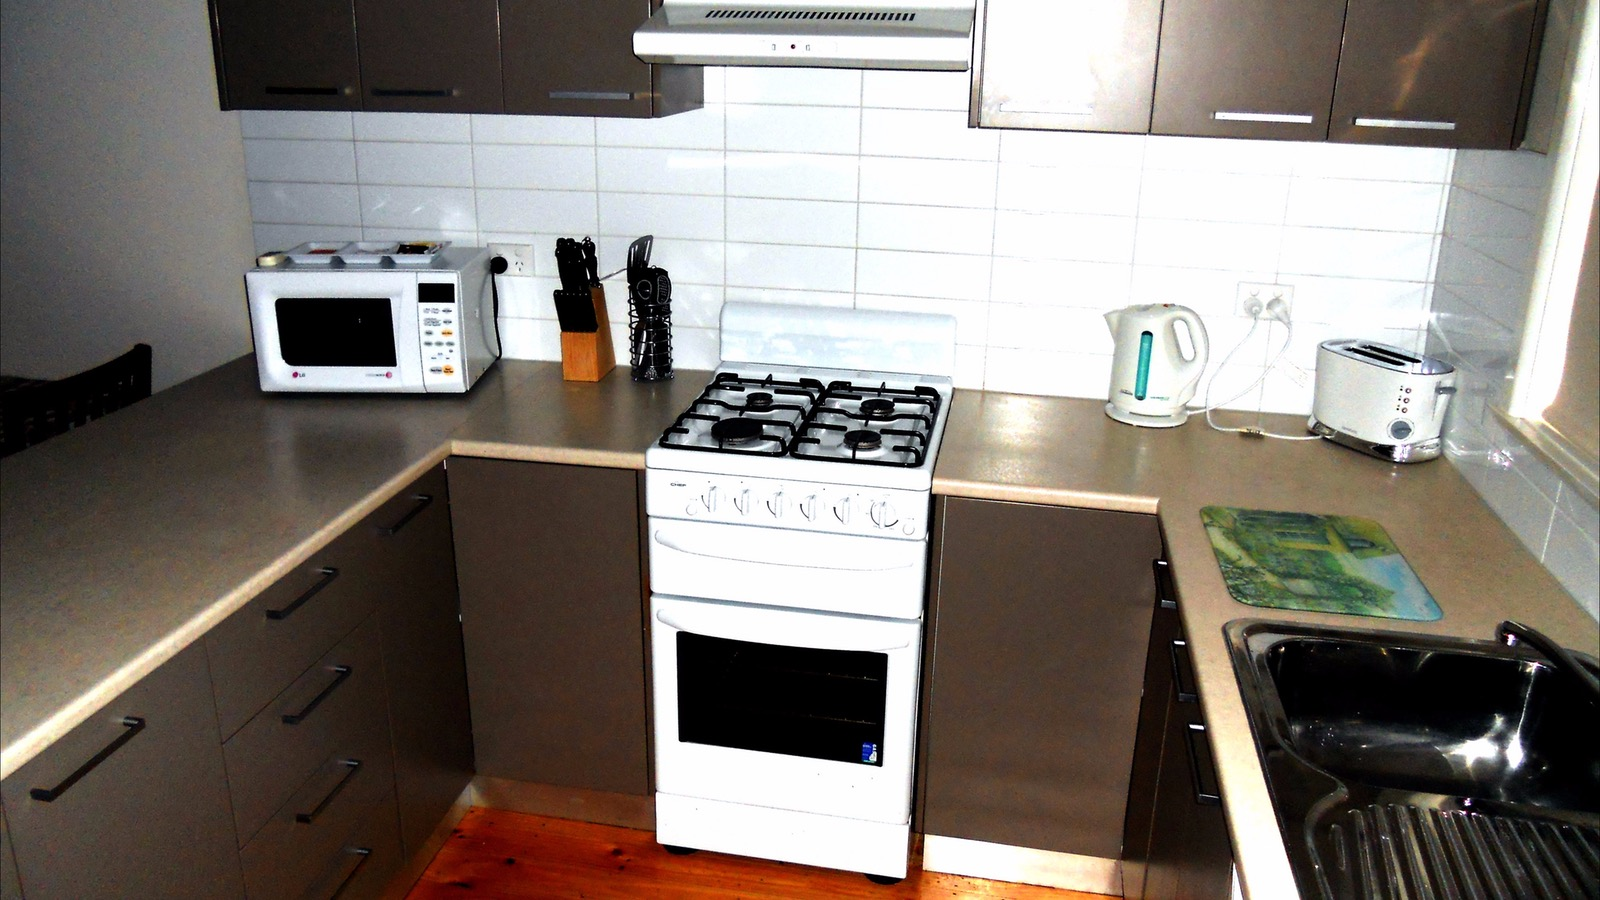 Kitchen in deluxe apartments - fully equipped